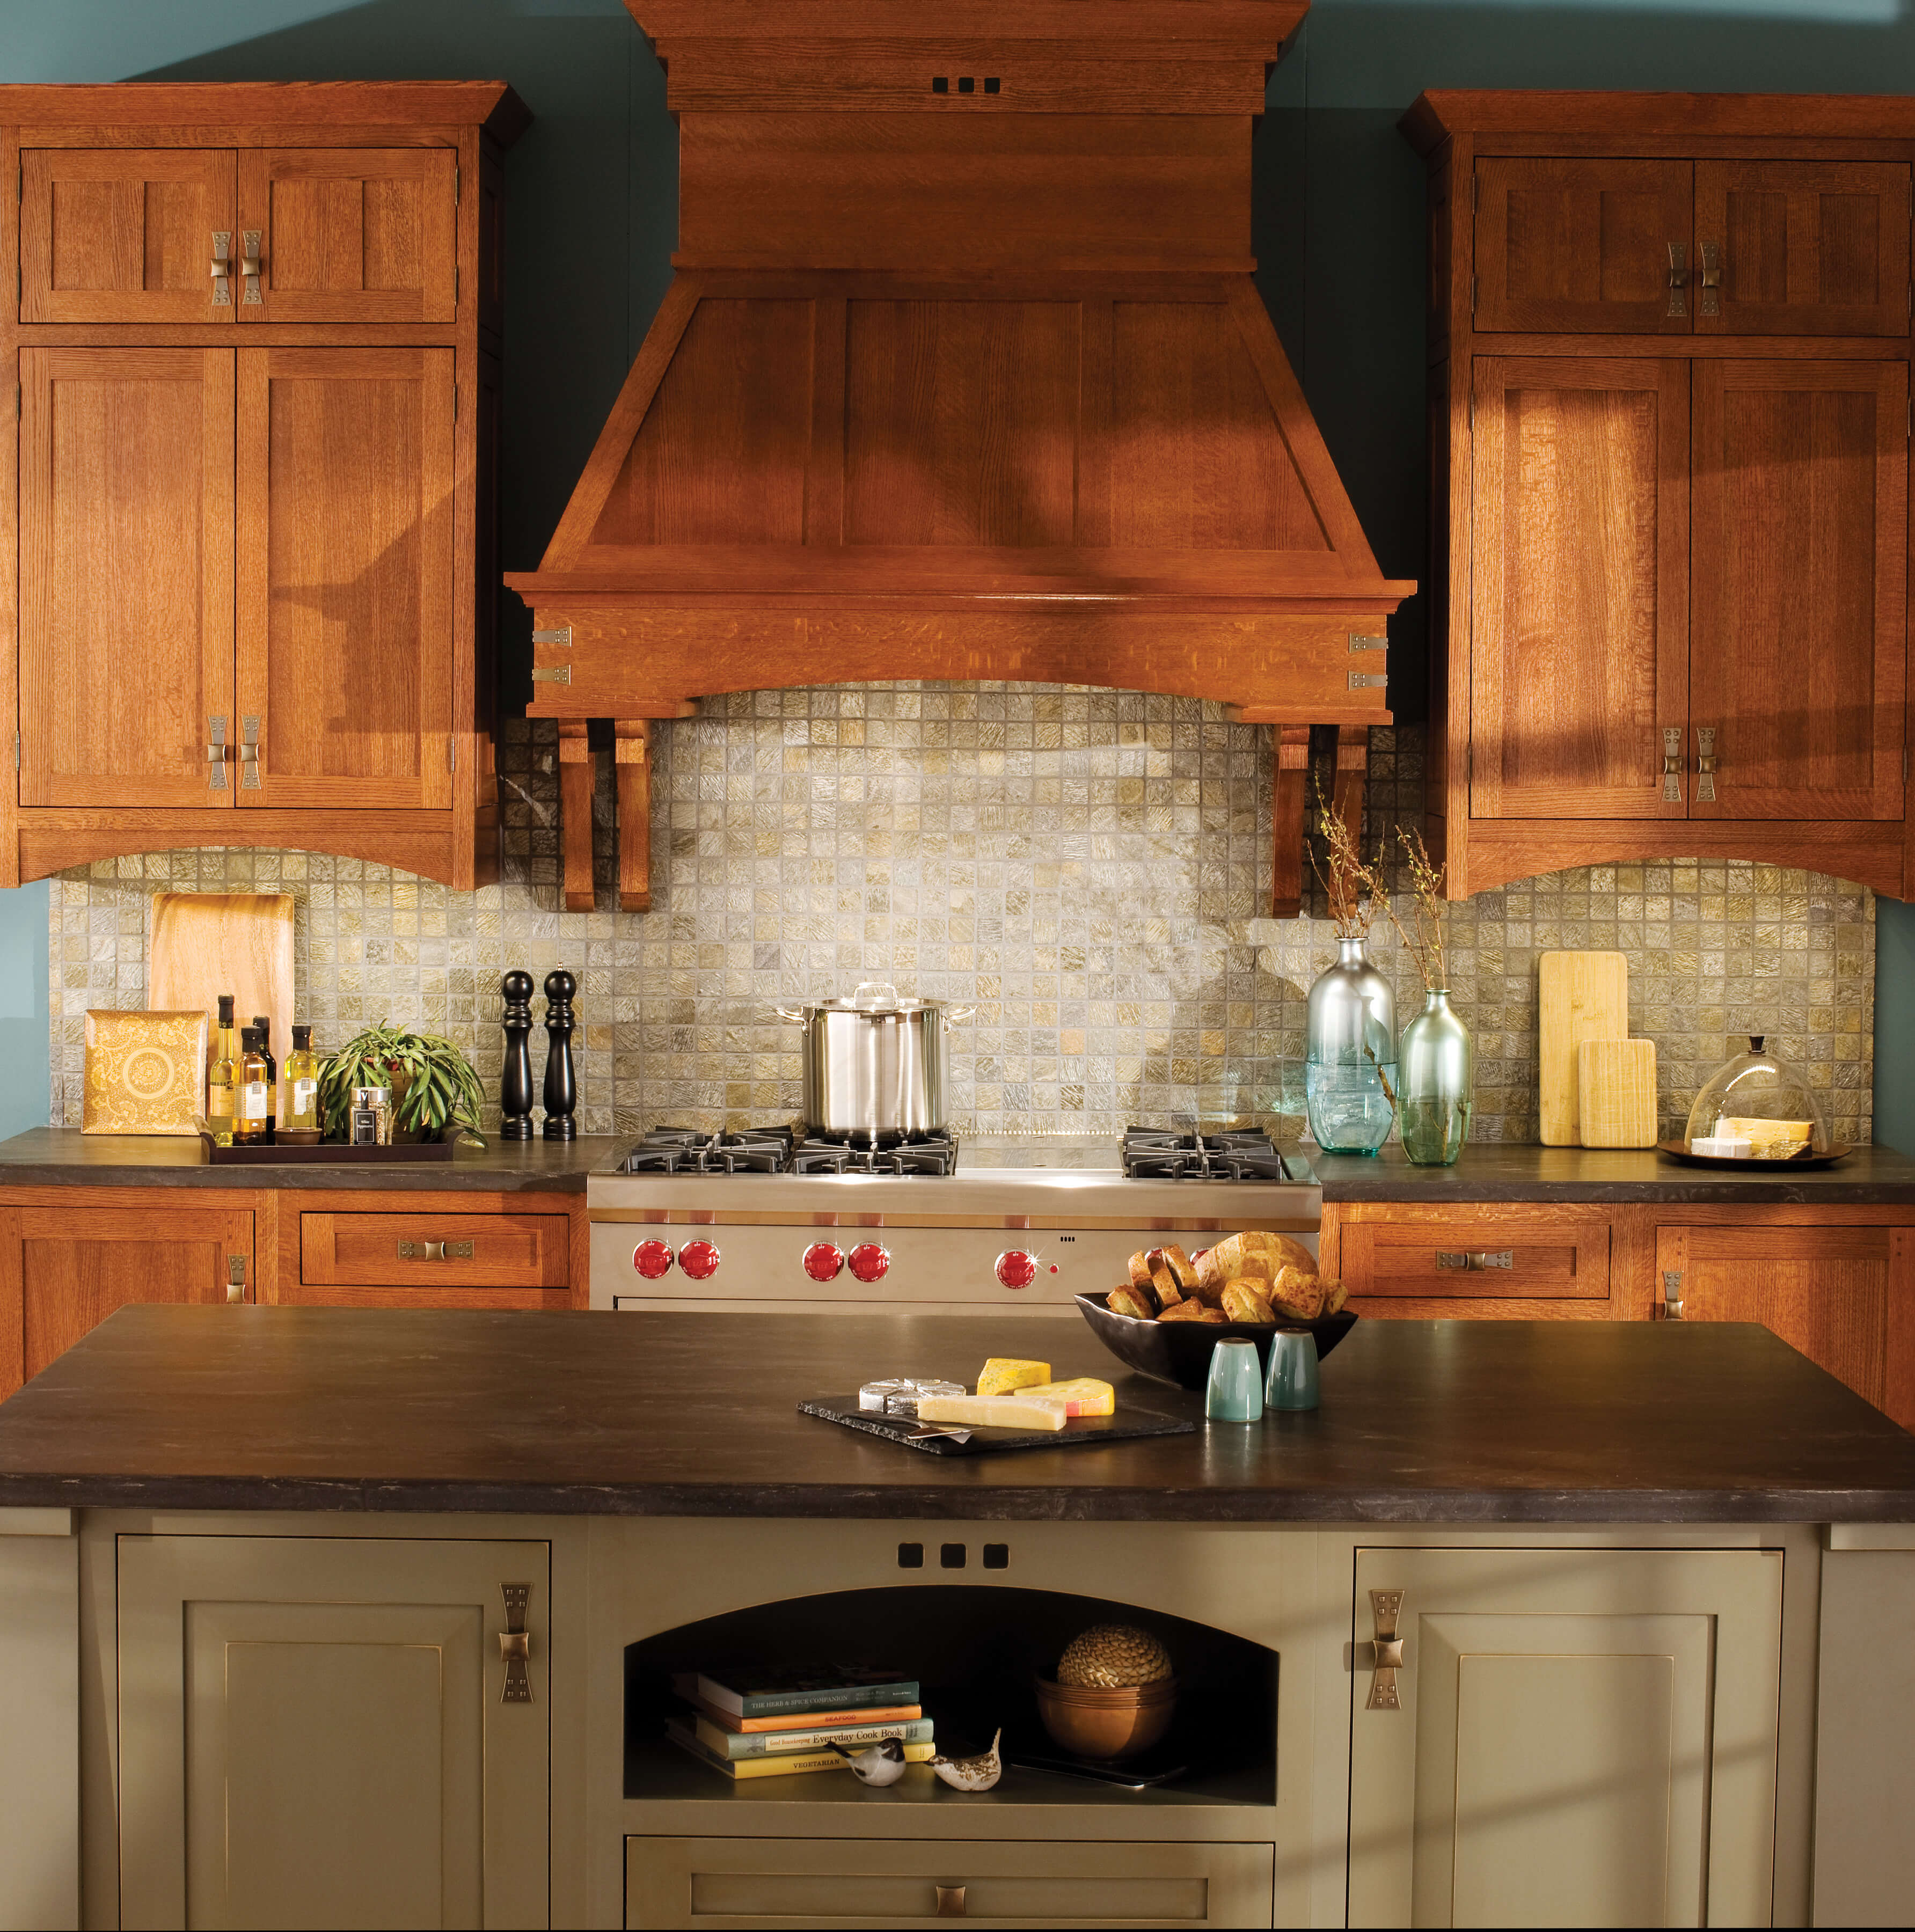 Dura Supreme Cabinetry shown with the Craftsma Panel-Inset door style with a